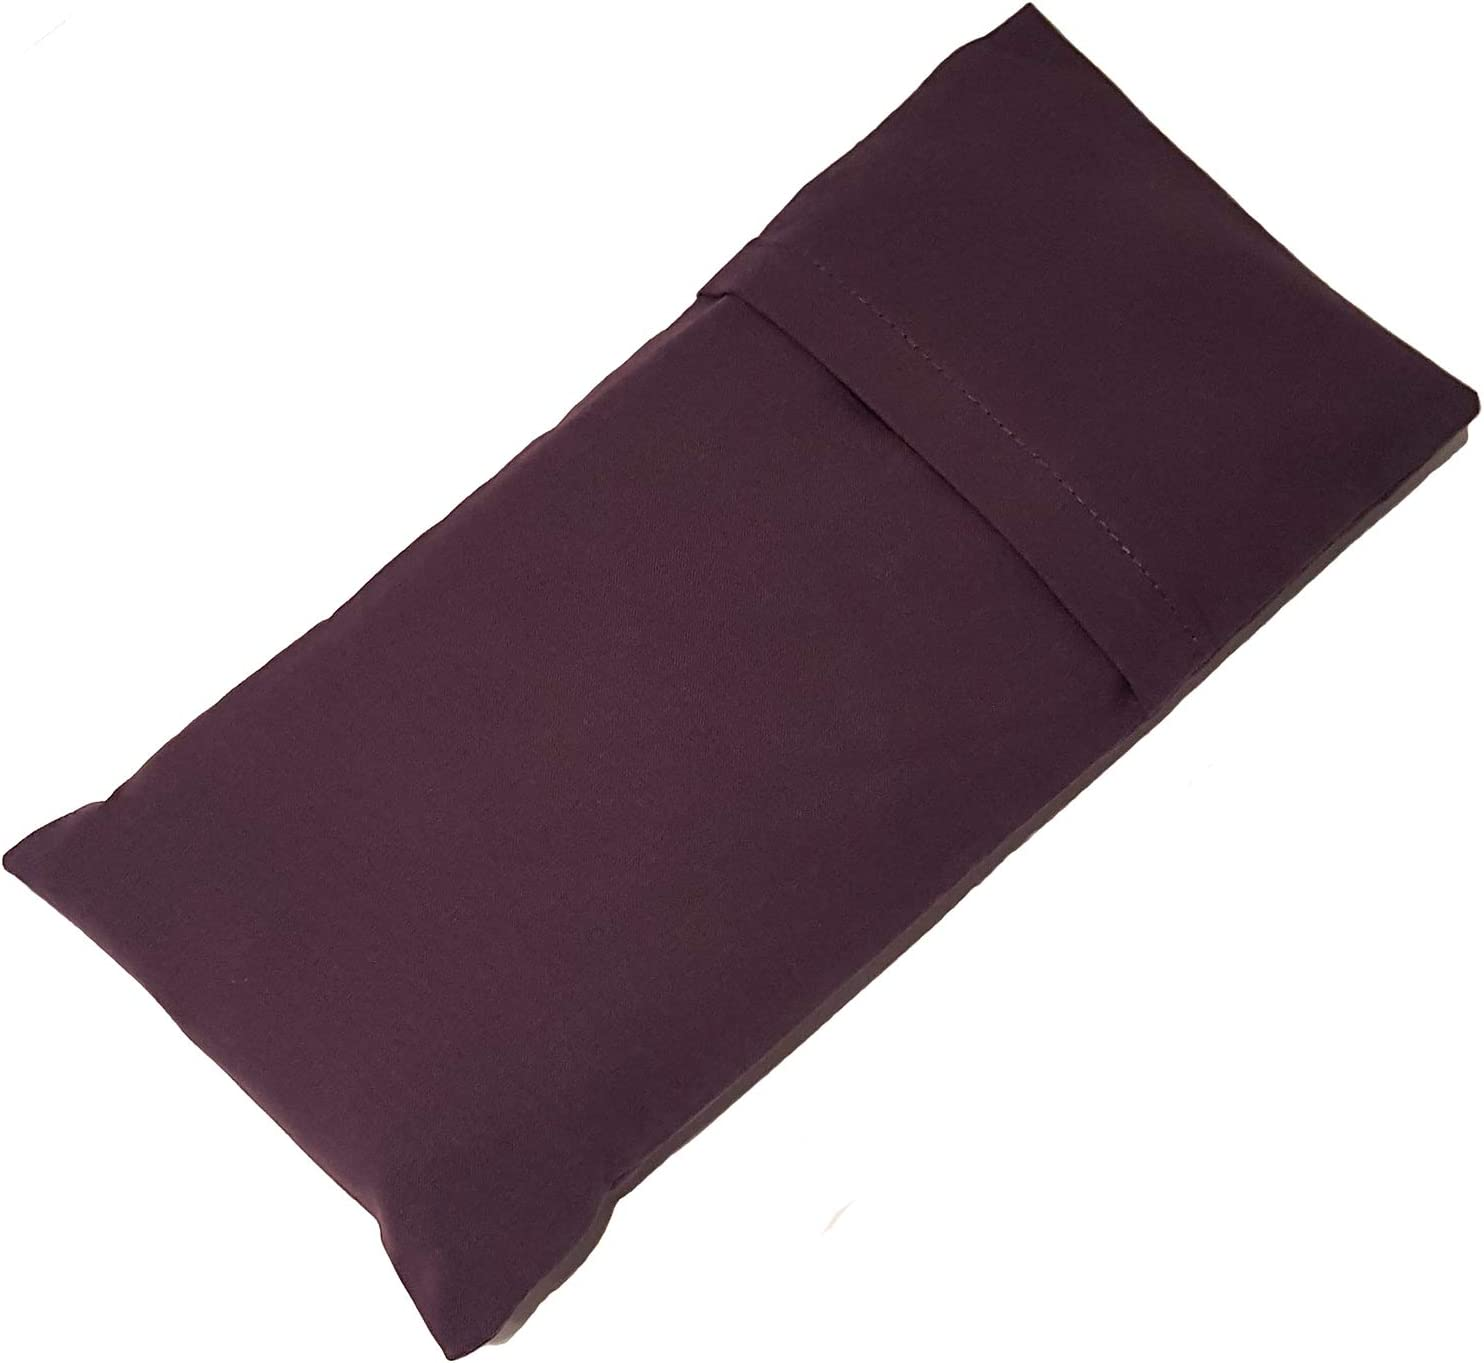 Ruth White Yoga Products Ltd Eggplant Aubergine Classic Plain Cotton Eye Pillow filled with Flaxseeds and a hint of Lavender